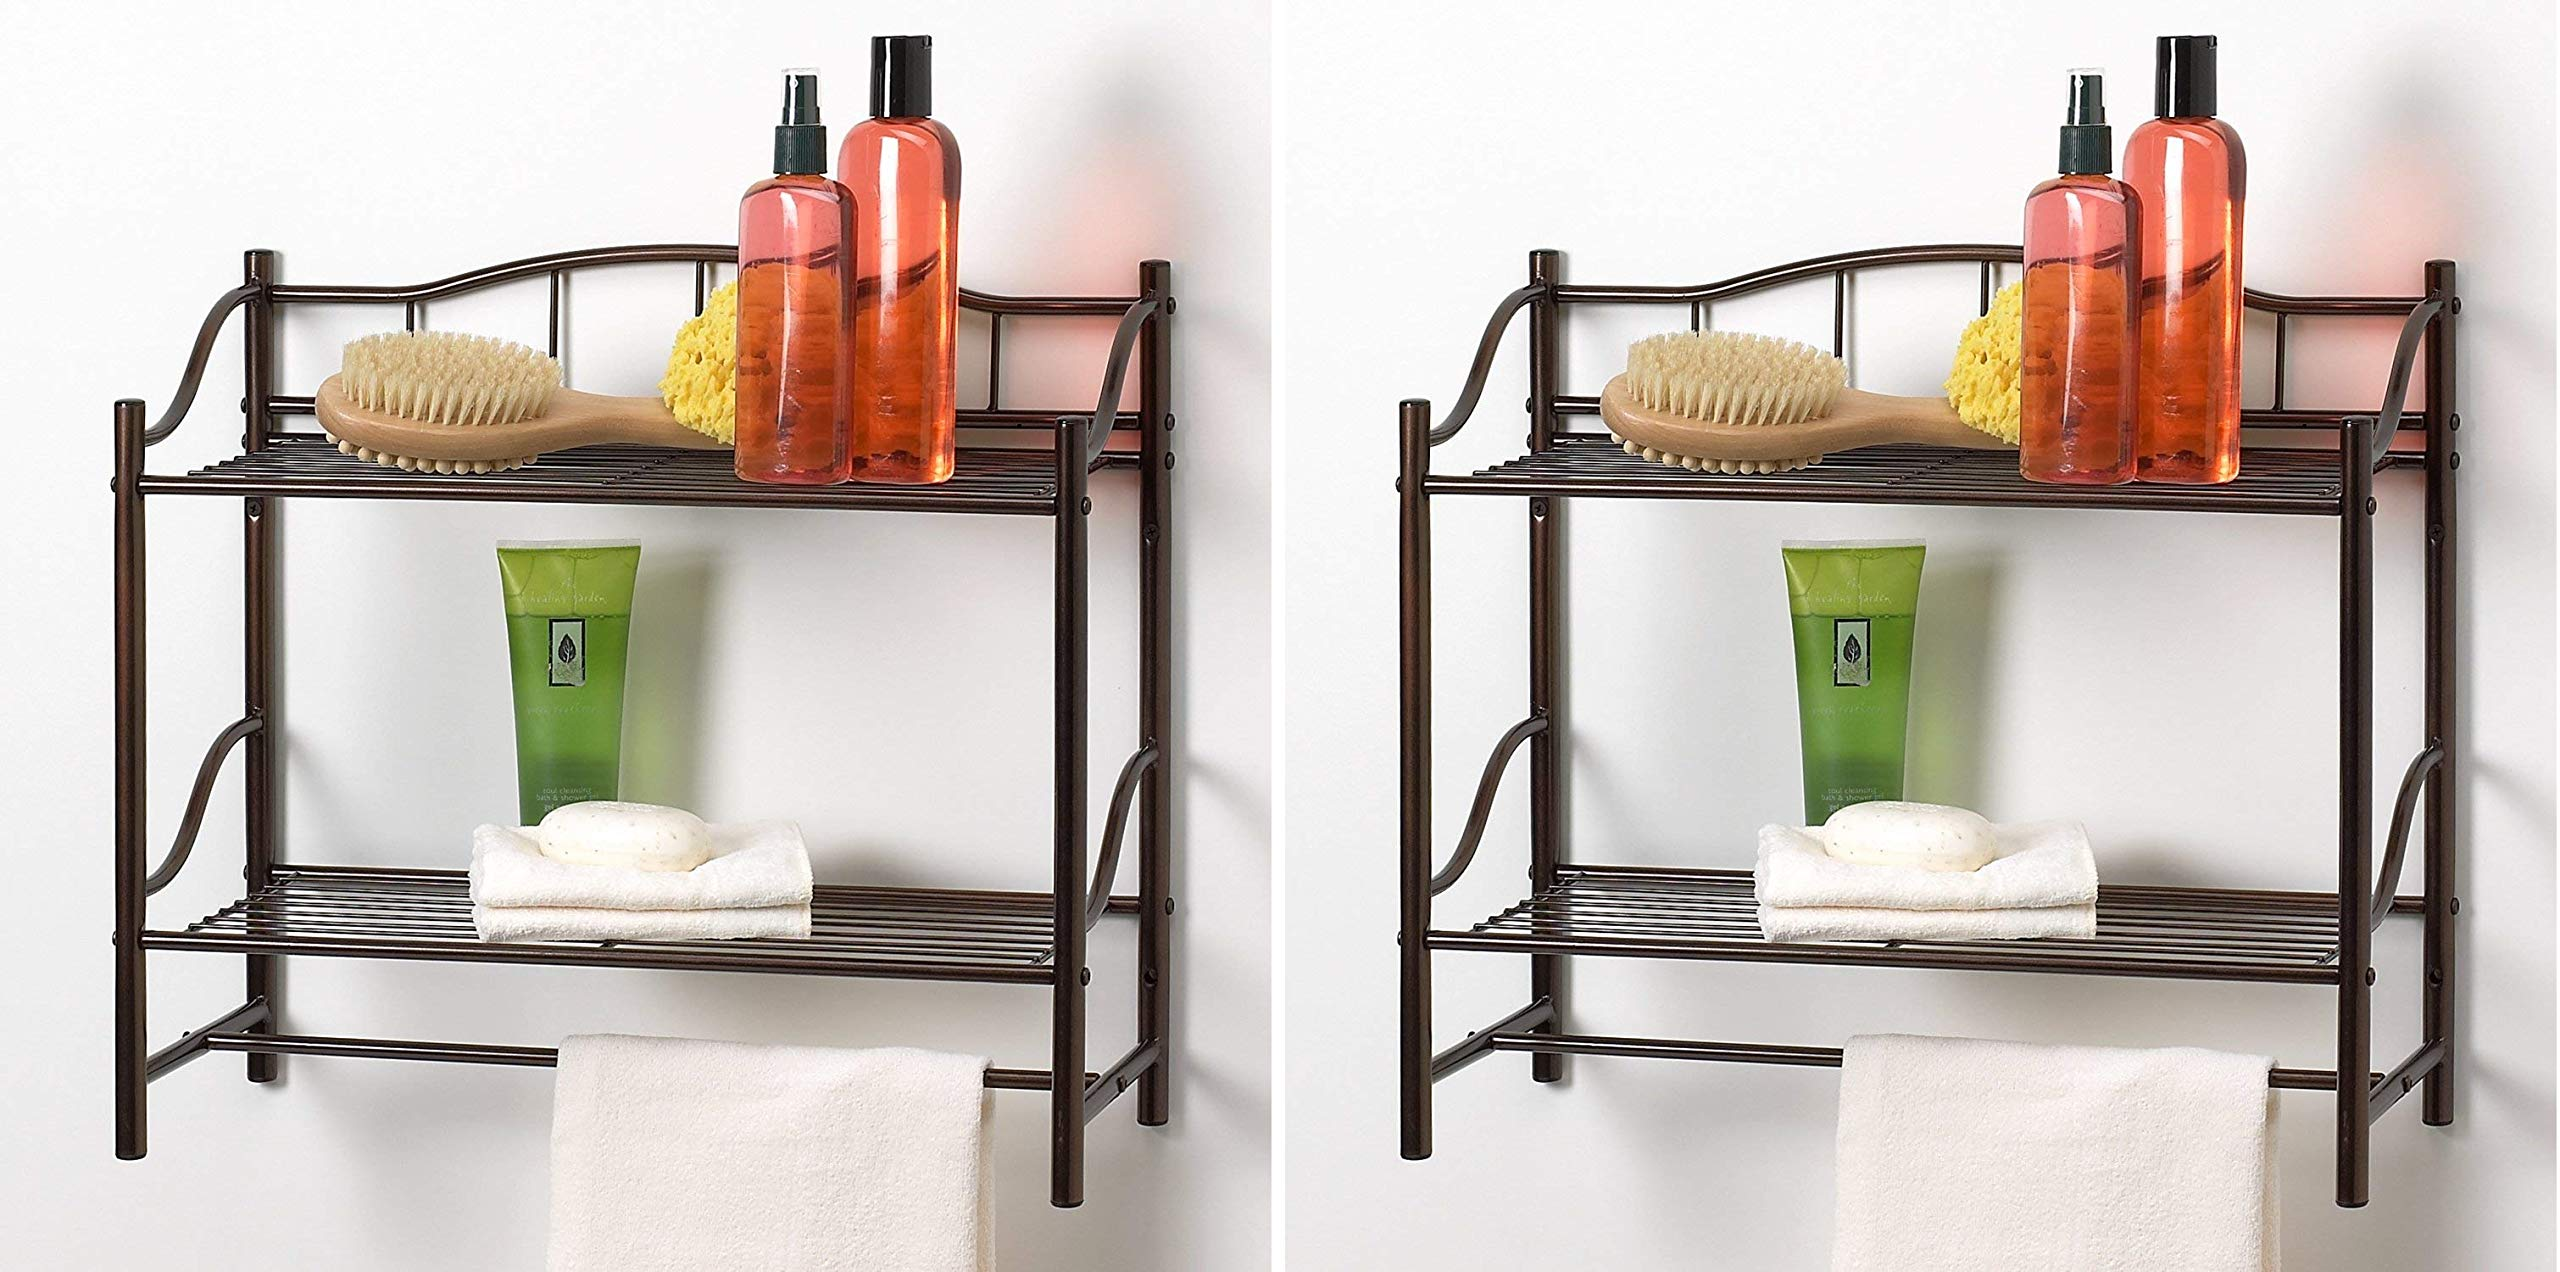 Creative Bath Products Complete Collection 2 Shelf Wall Organizer with Towel Bar, Oil Rubbed Bronze (Pack of 2)